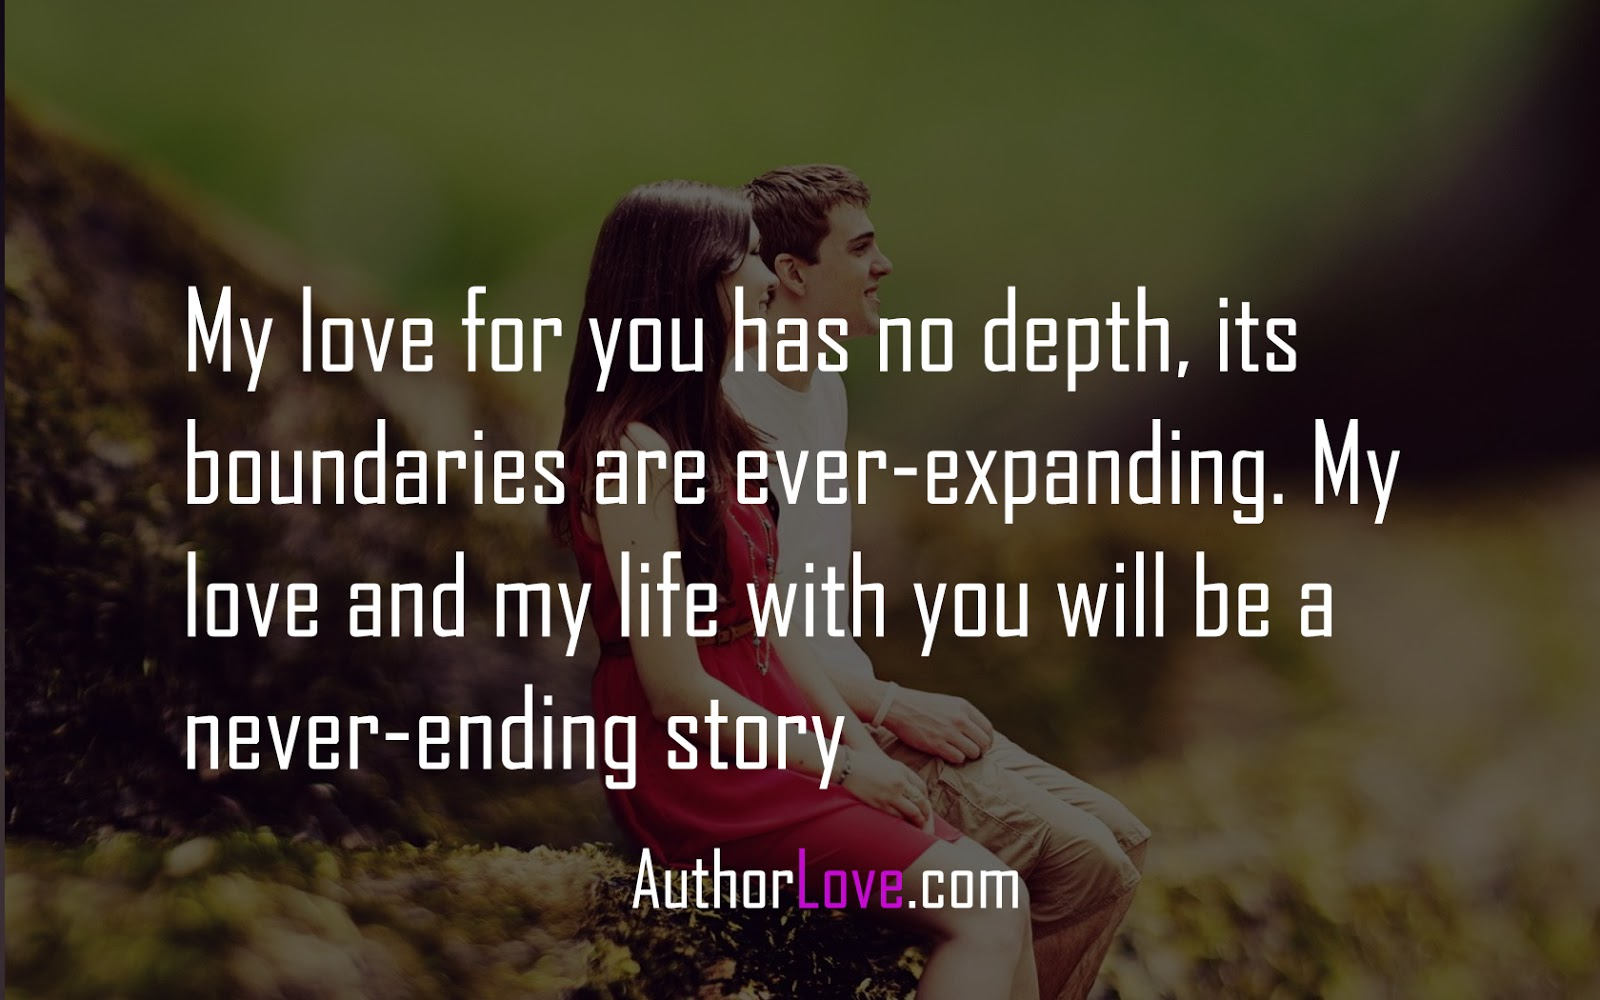 Love Quotes For My Love Beauteous My Love For You Has No Depth Its Boundaries Are Everexpanding